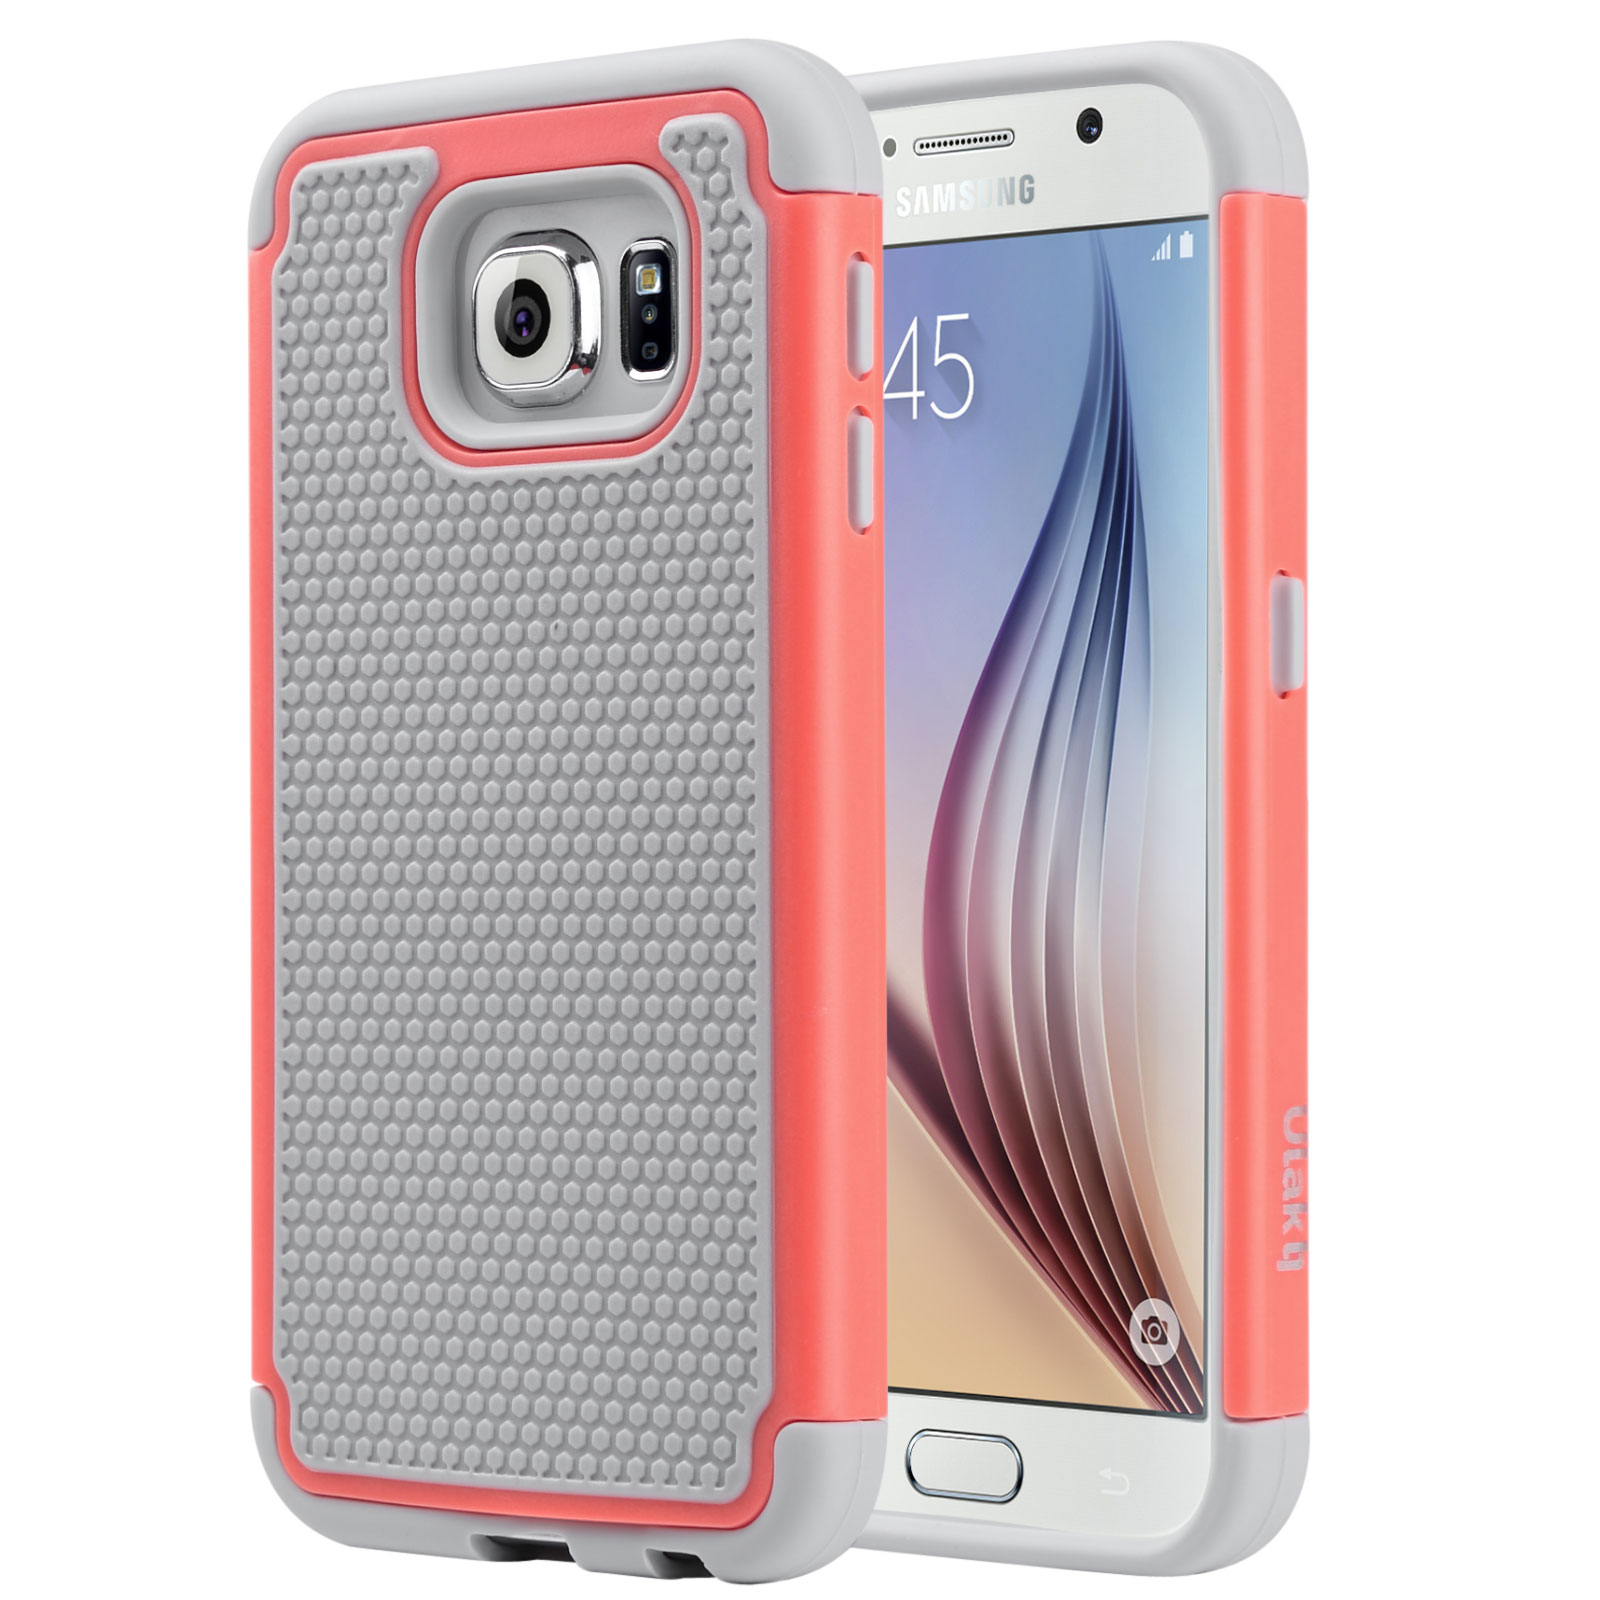 ULAK Galaxy S6 Case, 2in1 Style Bumper Protection Case with Hard Plastic Shell & Soft Silicone Cover for Samsung Galaxy S6